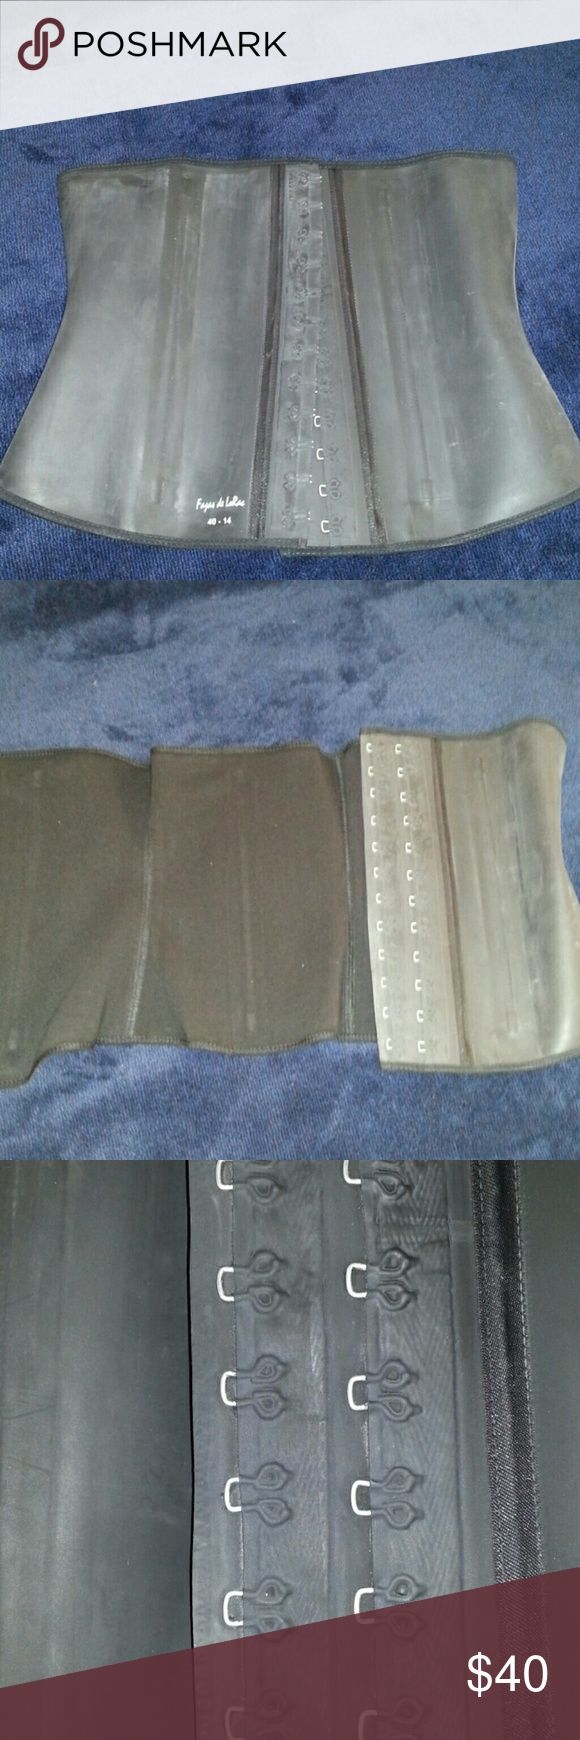 Latex Waist Trainer Handmade Colombian waist trainer. Authentic quality faja direct from Colombia. Brand new never worn, this style because of the outer latex shell starts to grey so I sell them here for an extremely discount price. I sell the ones that arrive without flaws for full price on my website & in store. Other